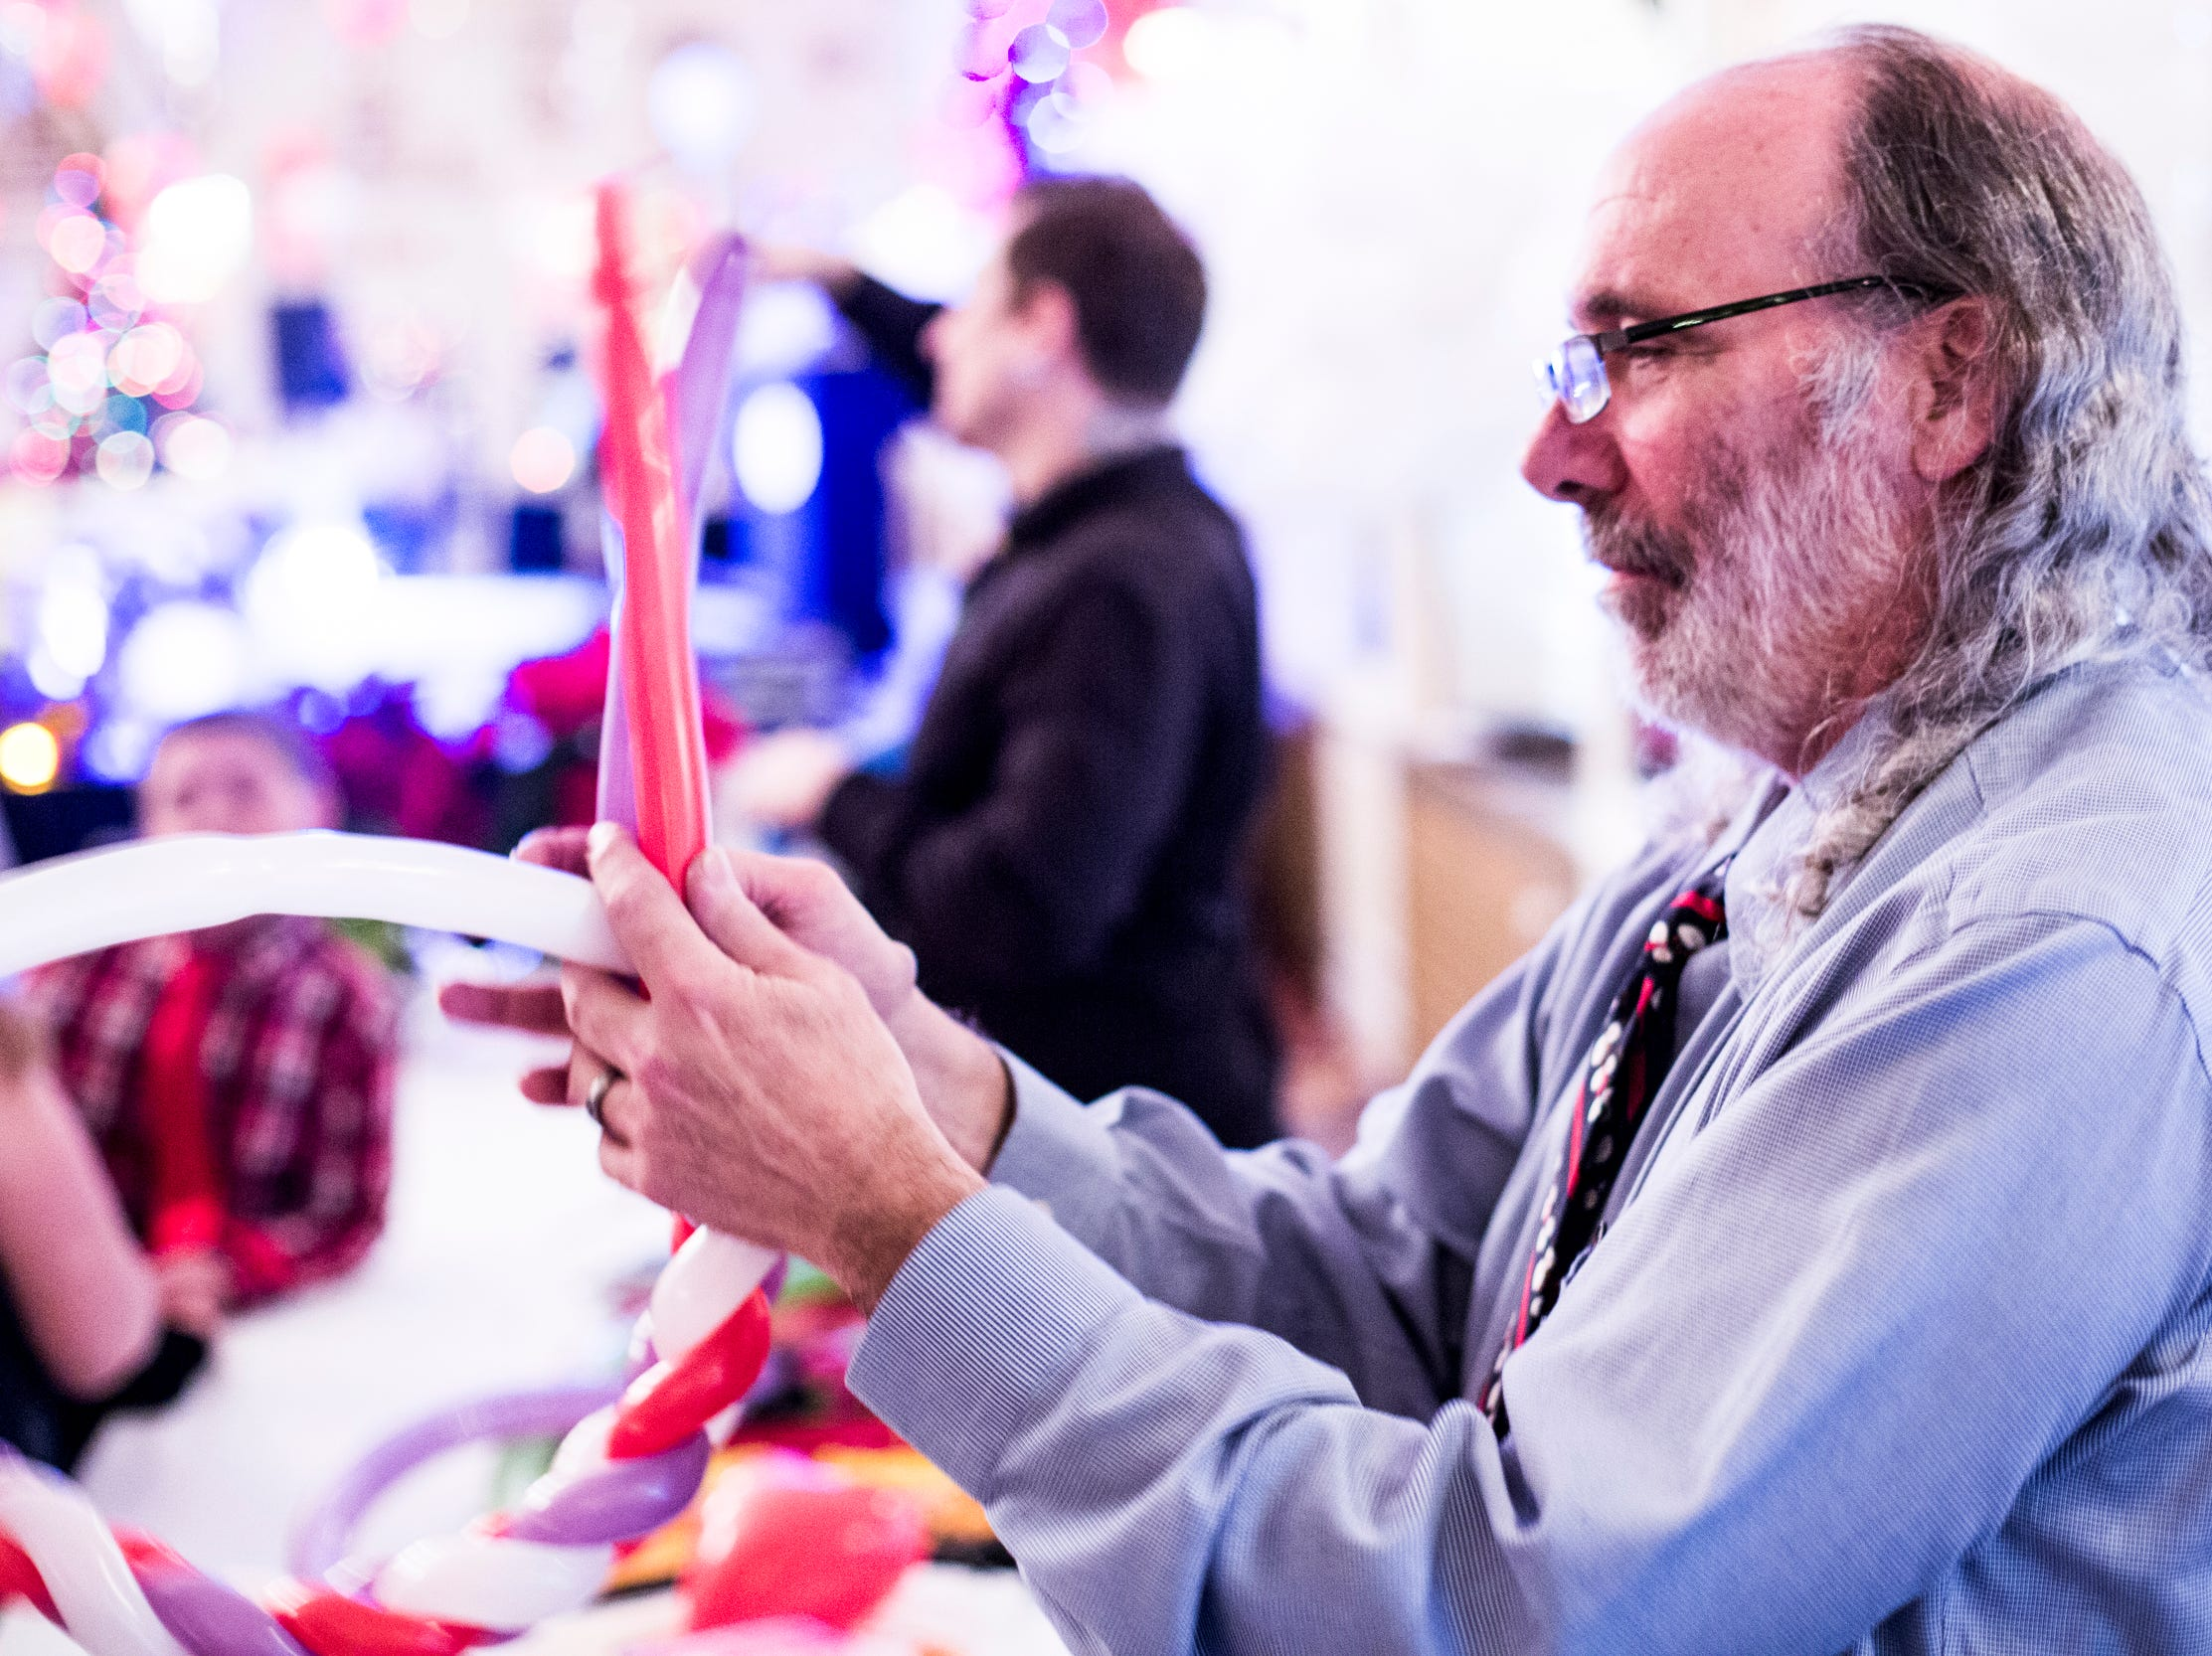 December 02 2018 - Dan Morse, with Twisted Balloons, works to create a balloon crown during the Memphis Jingle Bell Ball Holiday Cookie Party inside of the Continental Ballroom at the Peabody Hotel on Sunday. This was the 30th anniversary of the Jingle Bell Ball.